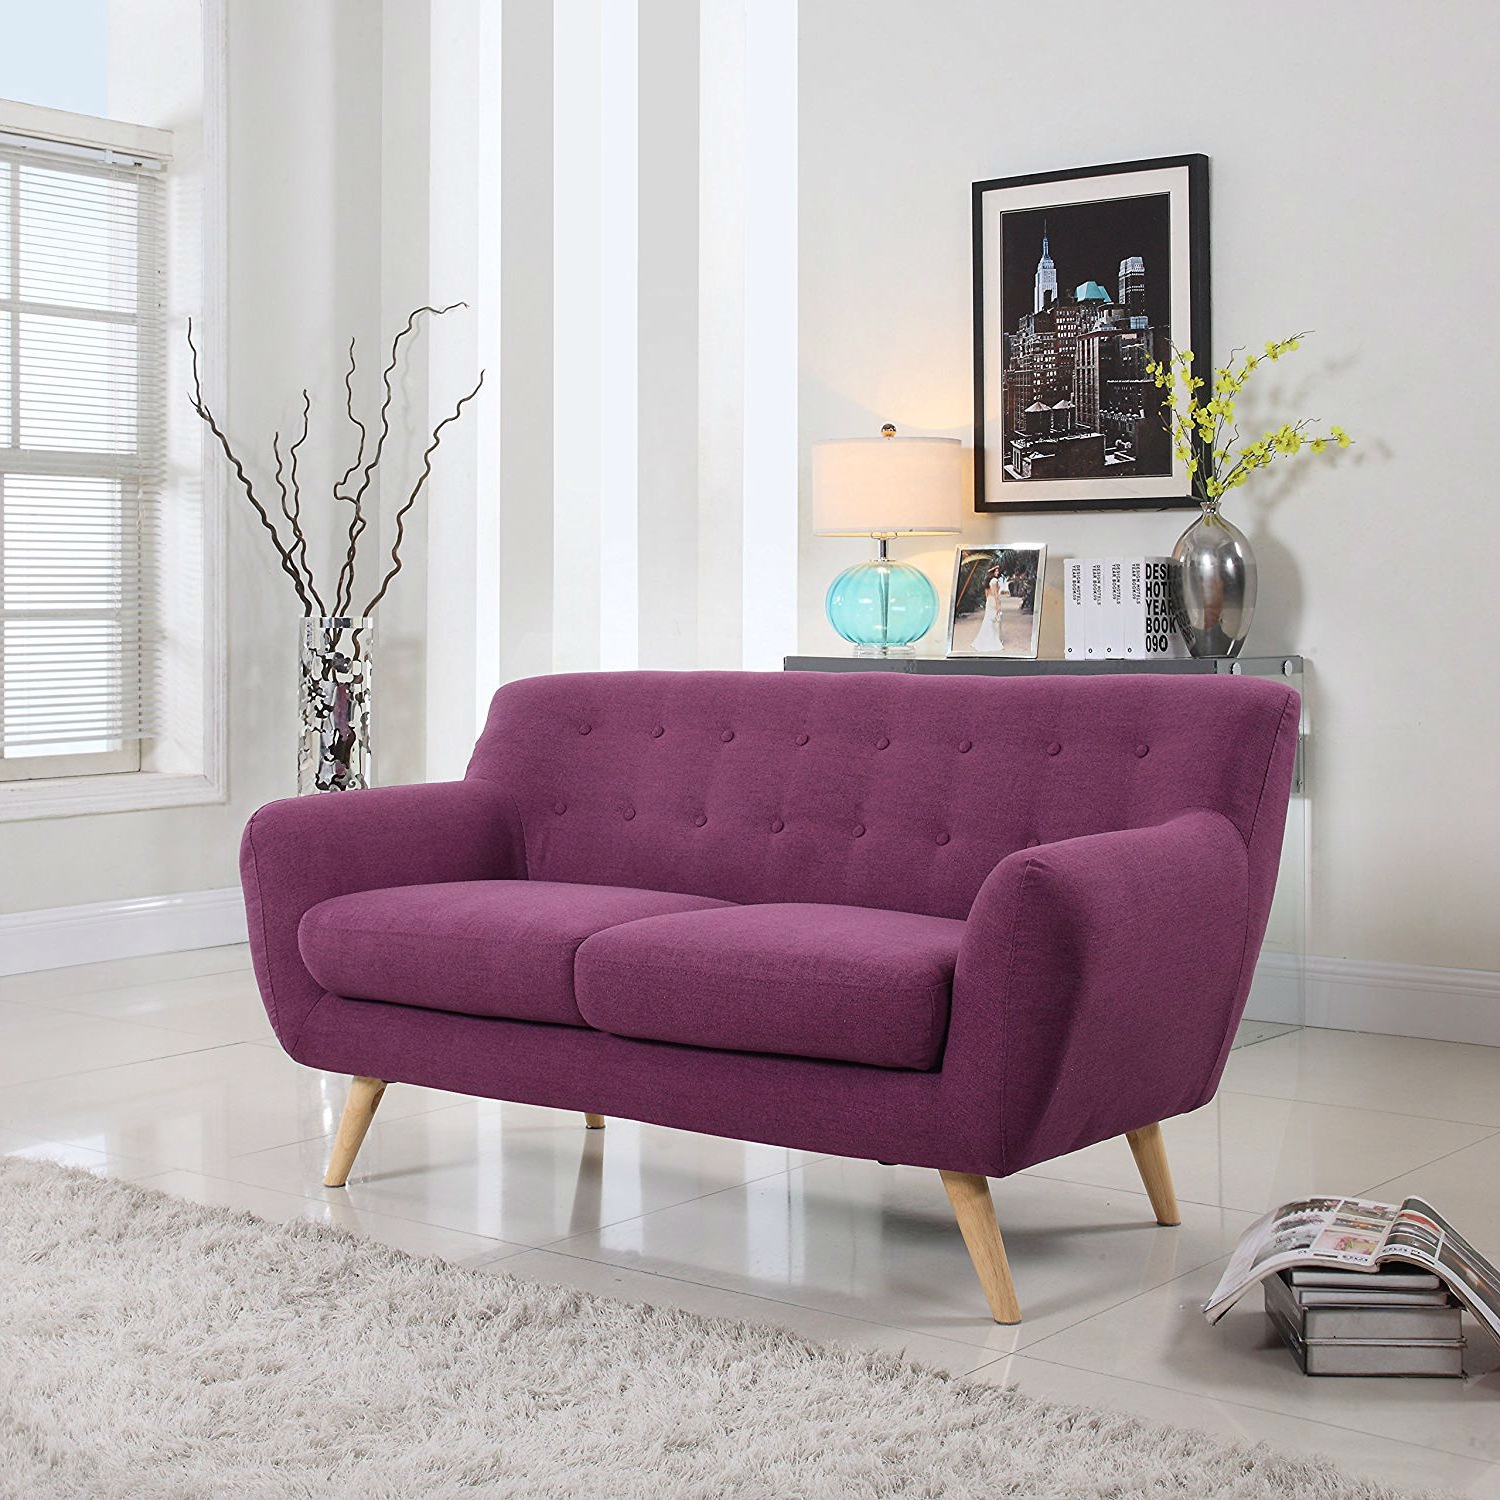 Modern Purple Linen Fabric Upholstered Mid Century Style Within Best And Newest Mireille Modern And Contemporary Fabric Upholstered Sectional Sofas (View 9 of 25)